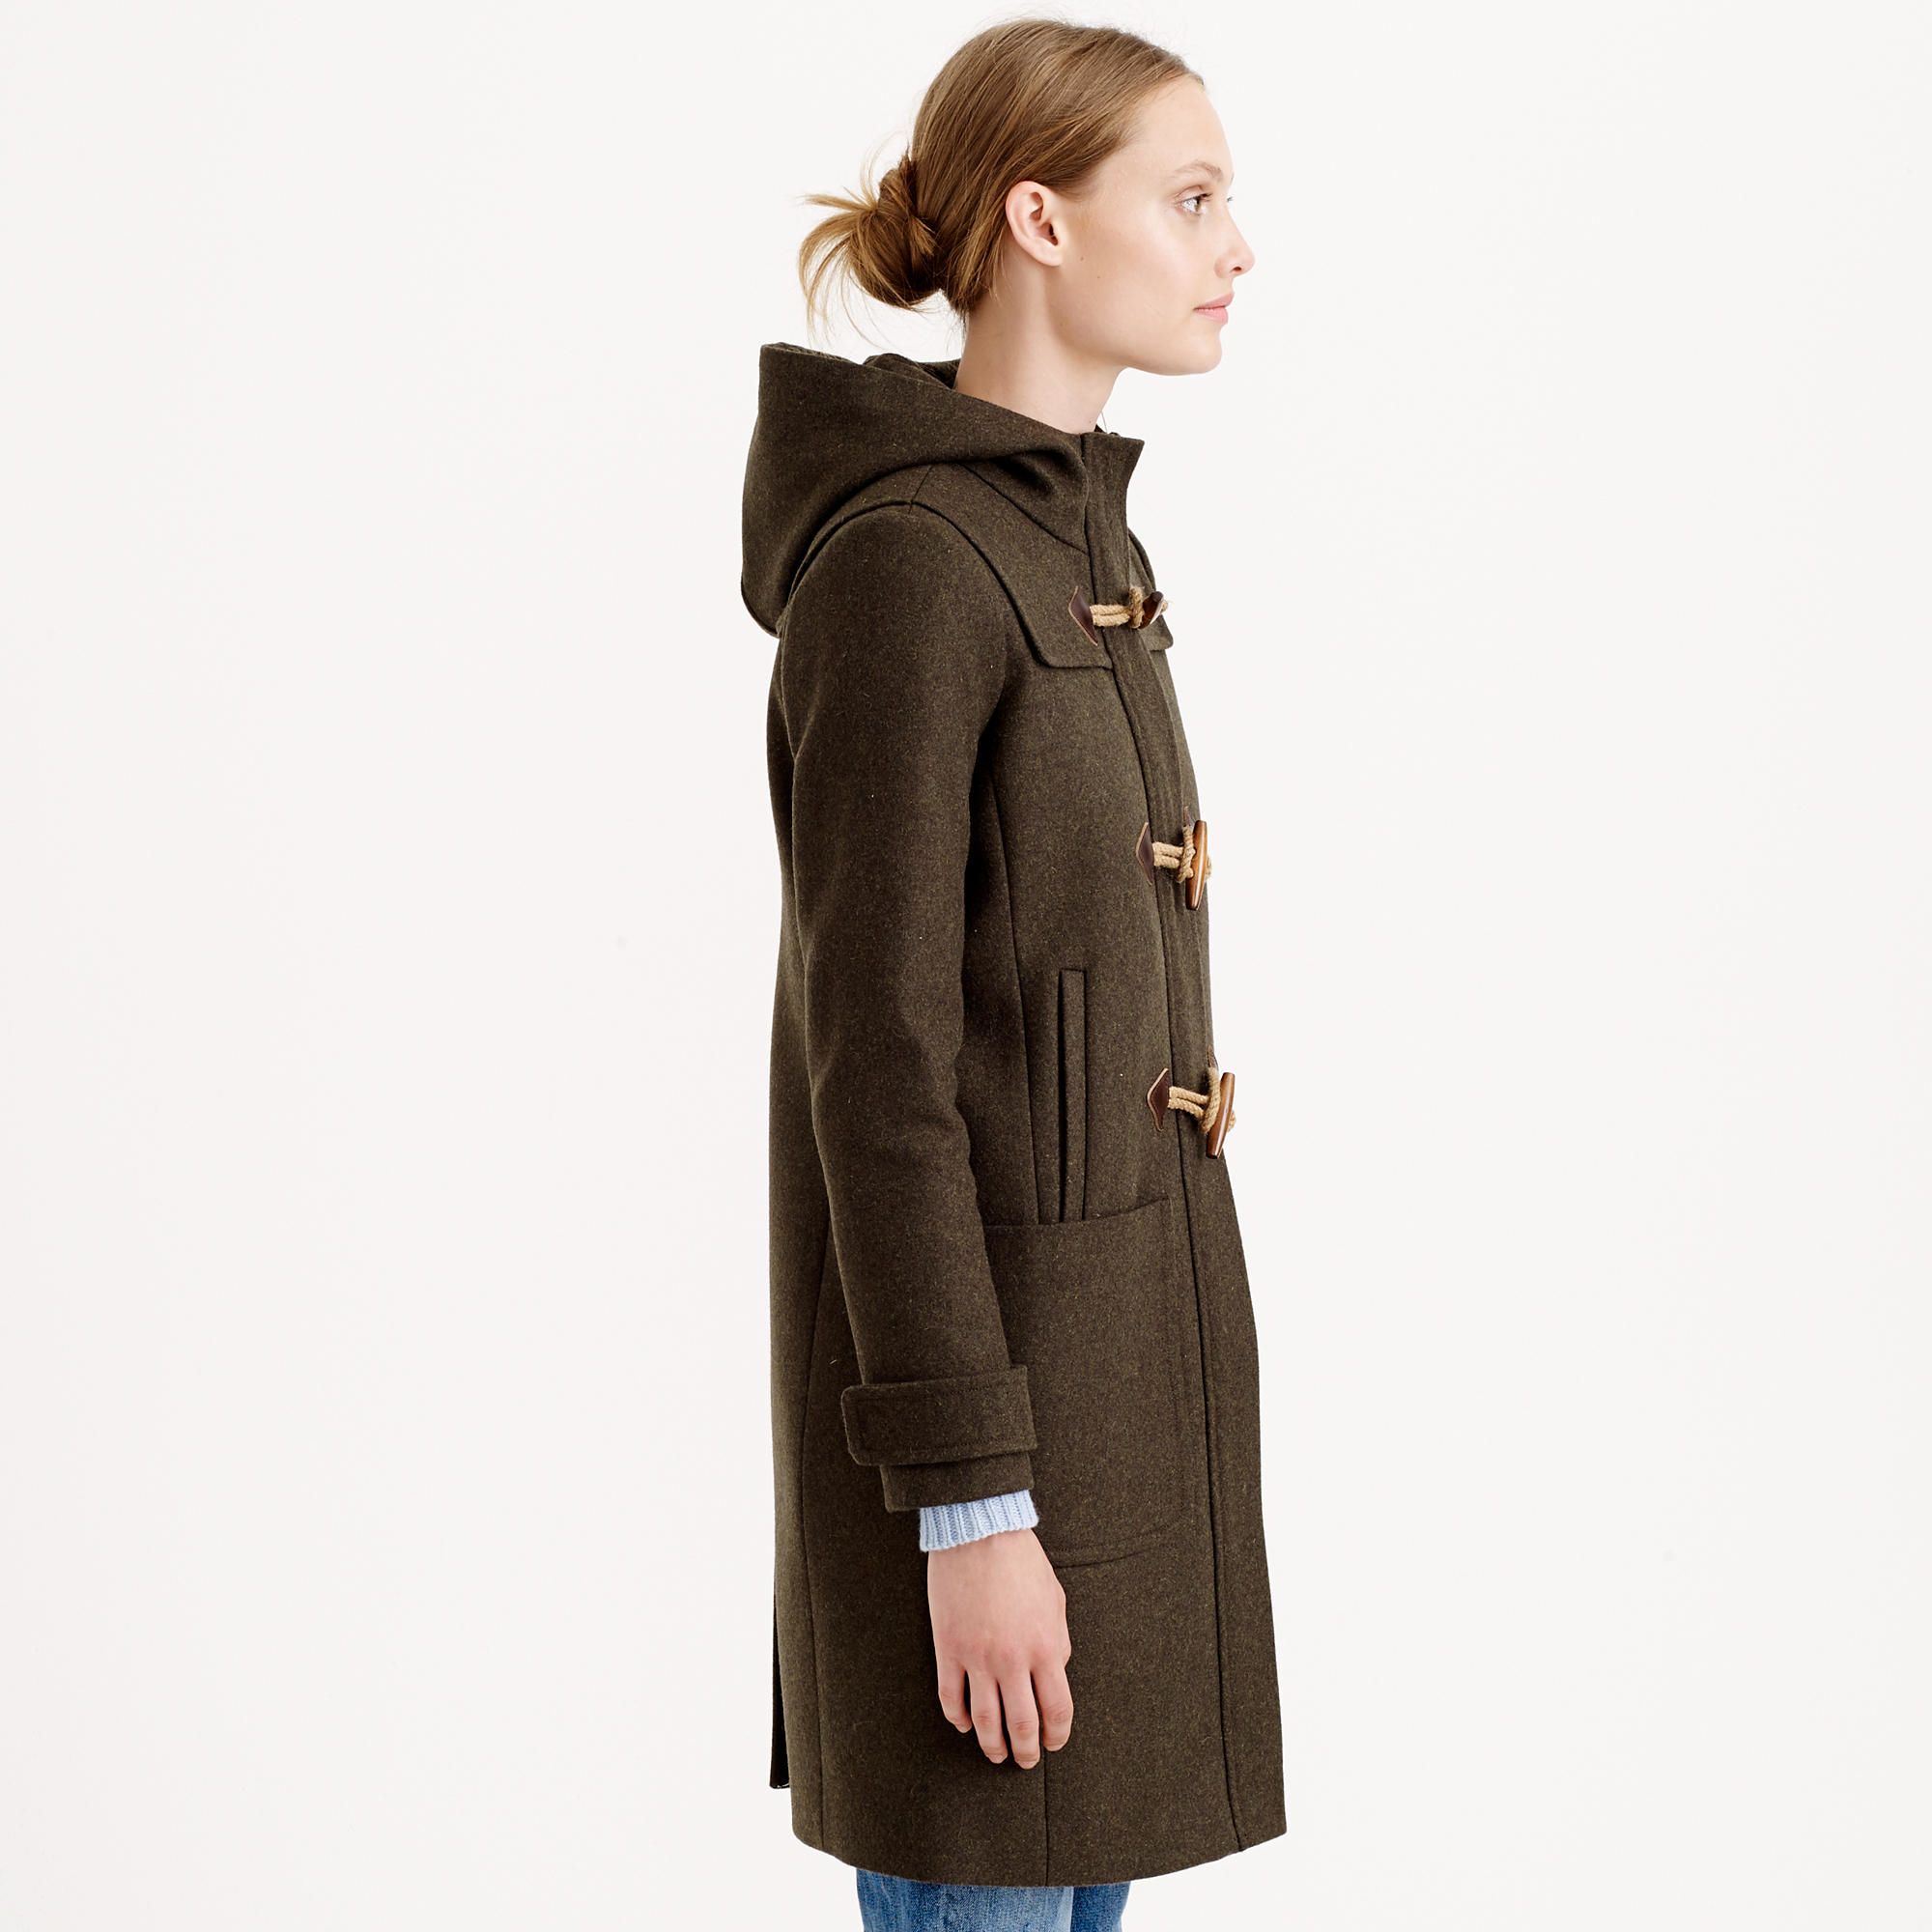 J.crew Wool Melton Toggle Coat in Brown | Lyst